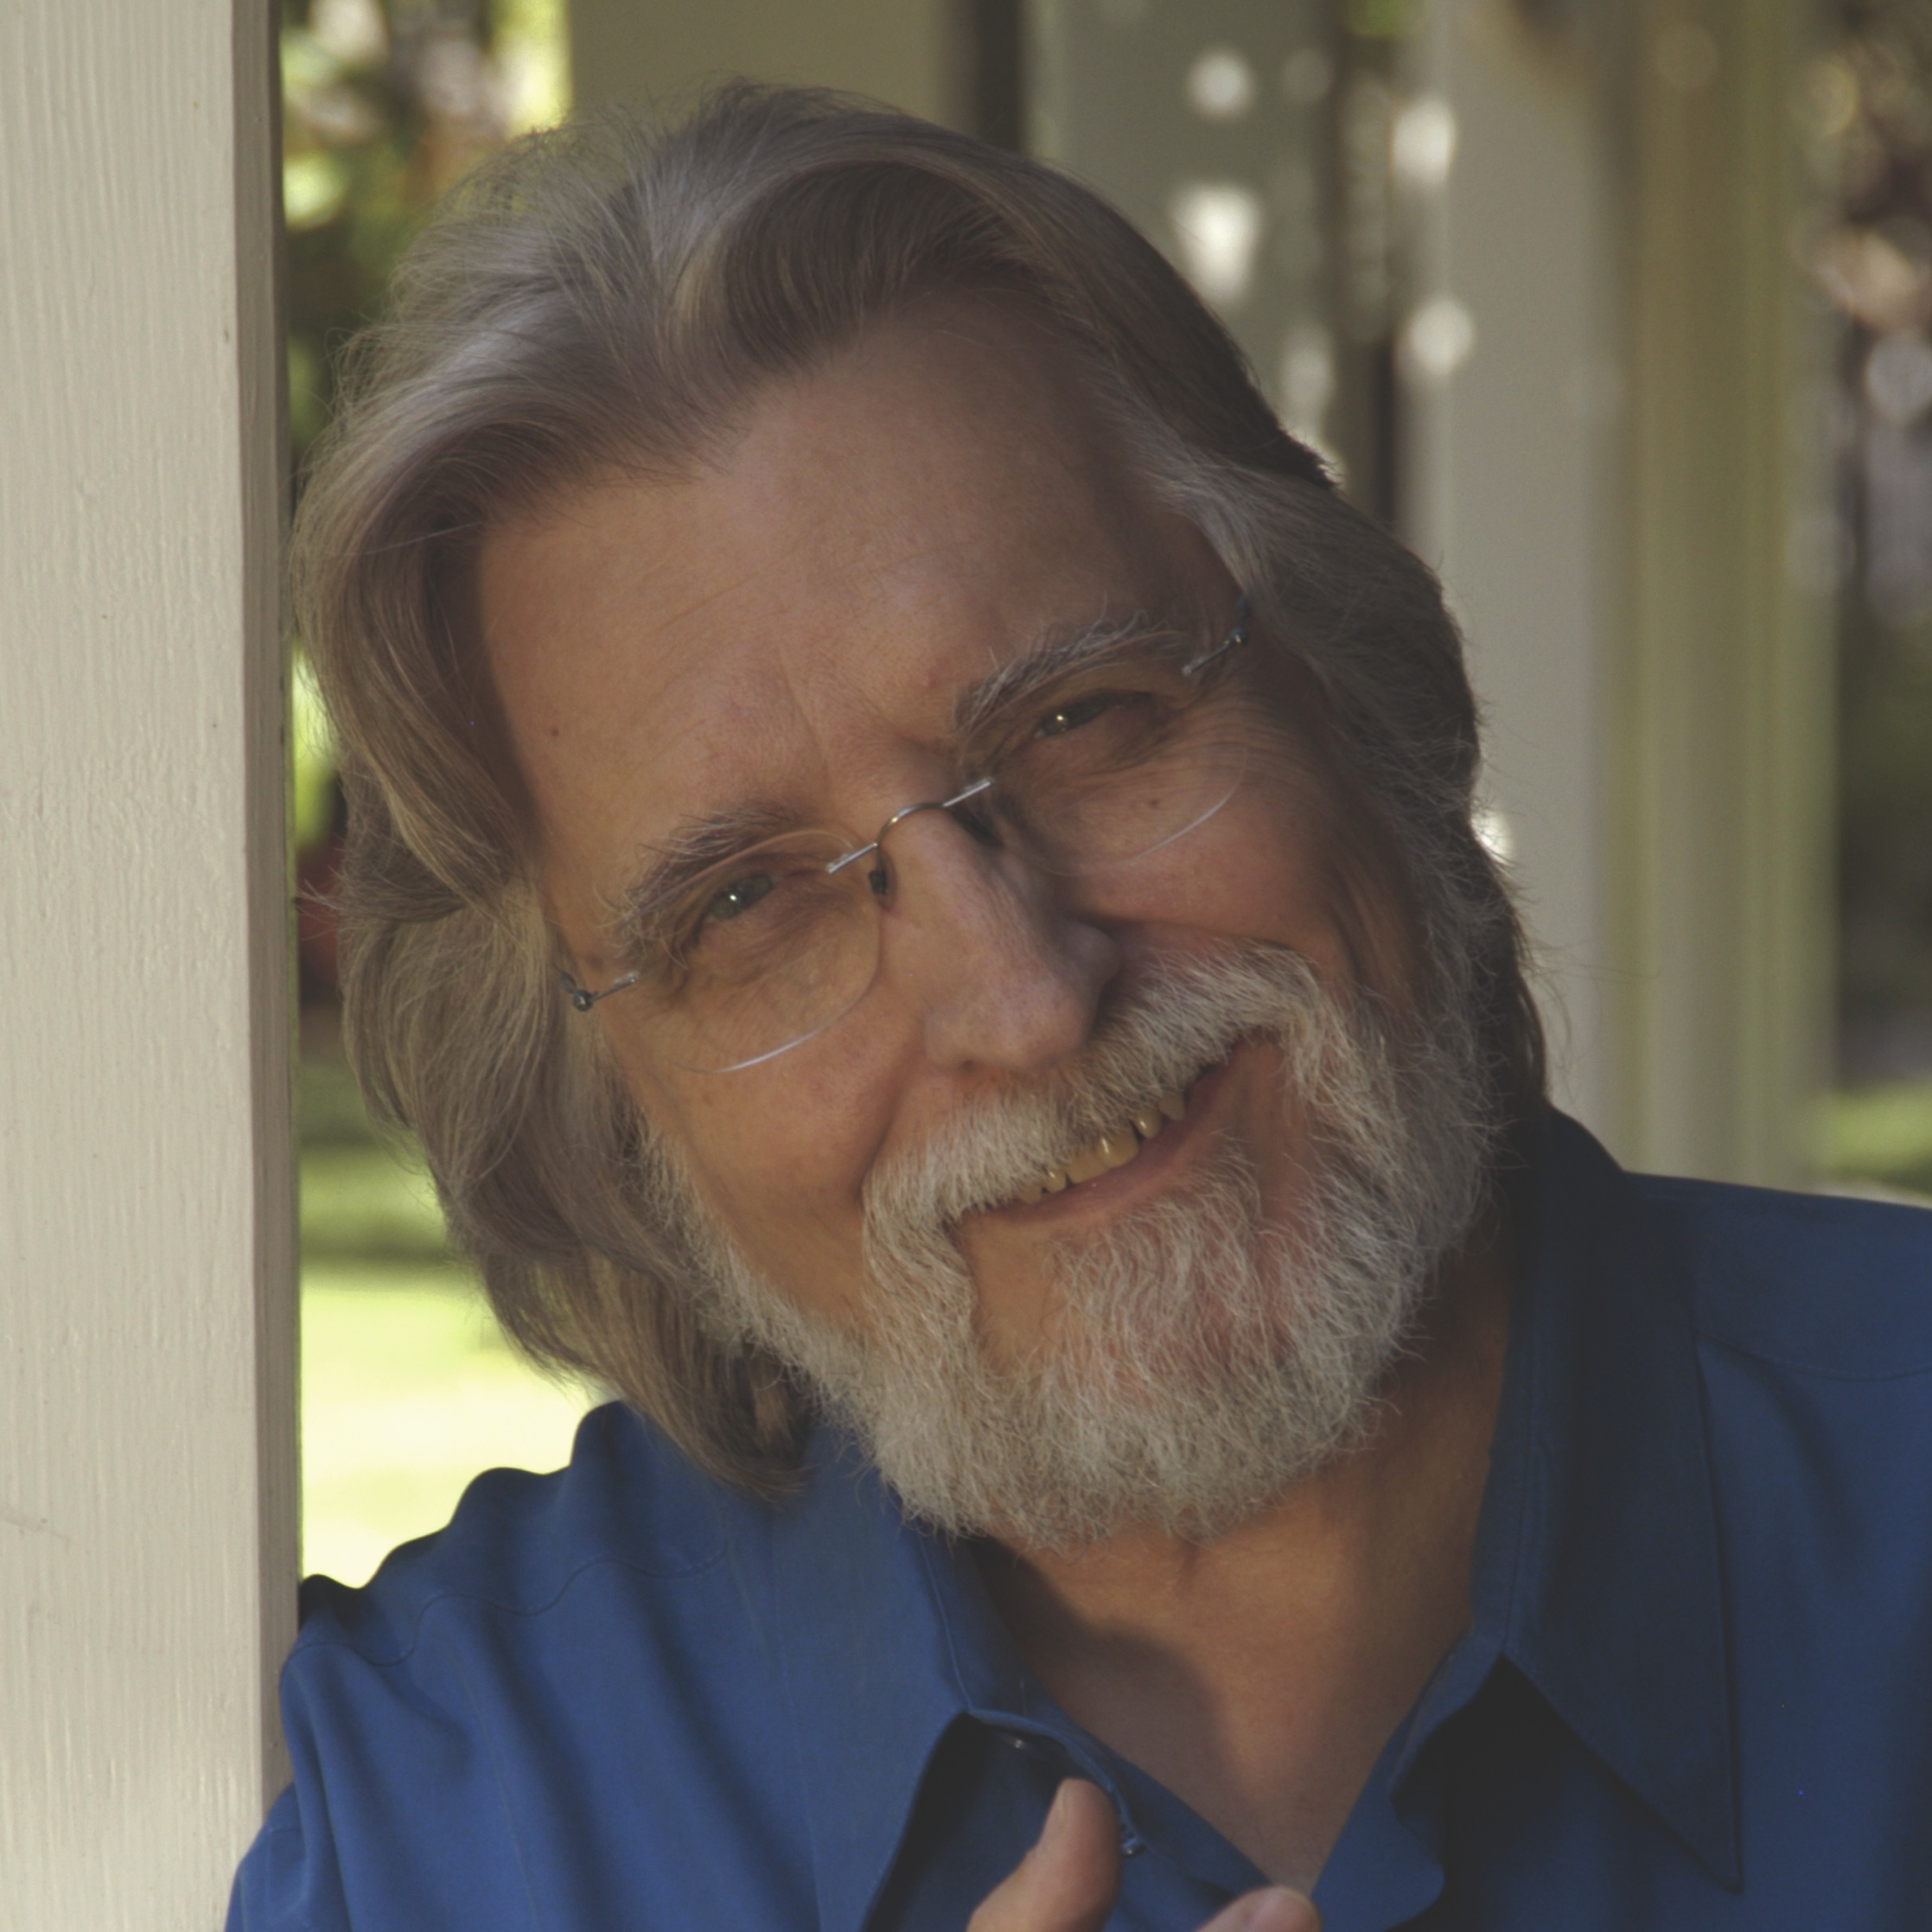 Neale donald walsch - Do you feel we are at a cross-road in our human history right now? And that we have to decide who we are and what our relationship is with each other, with all other living beings and with the planet?If so, then you are not alone in feeling this way. In Neale Donald Walsch's latest book The Essential Path, he offers us a radical solution to the problems facing humanity right now.